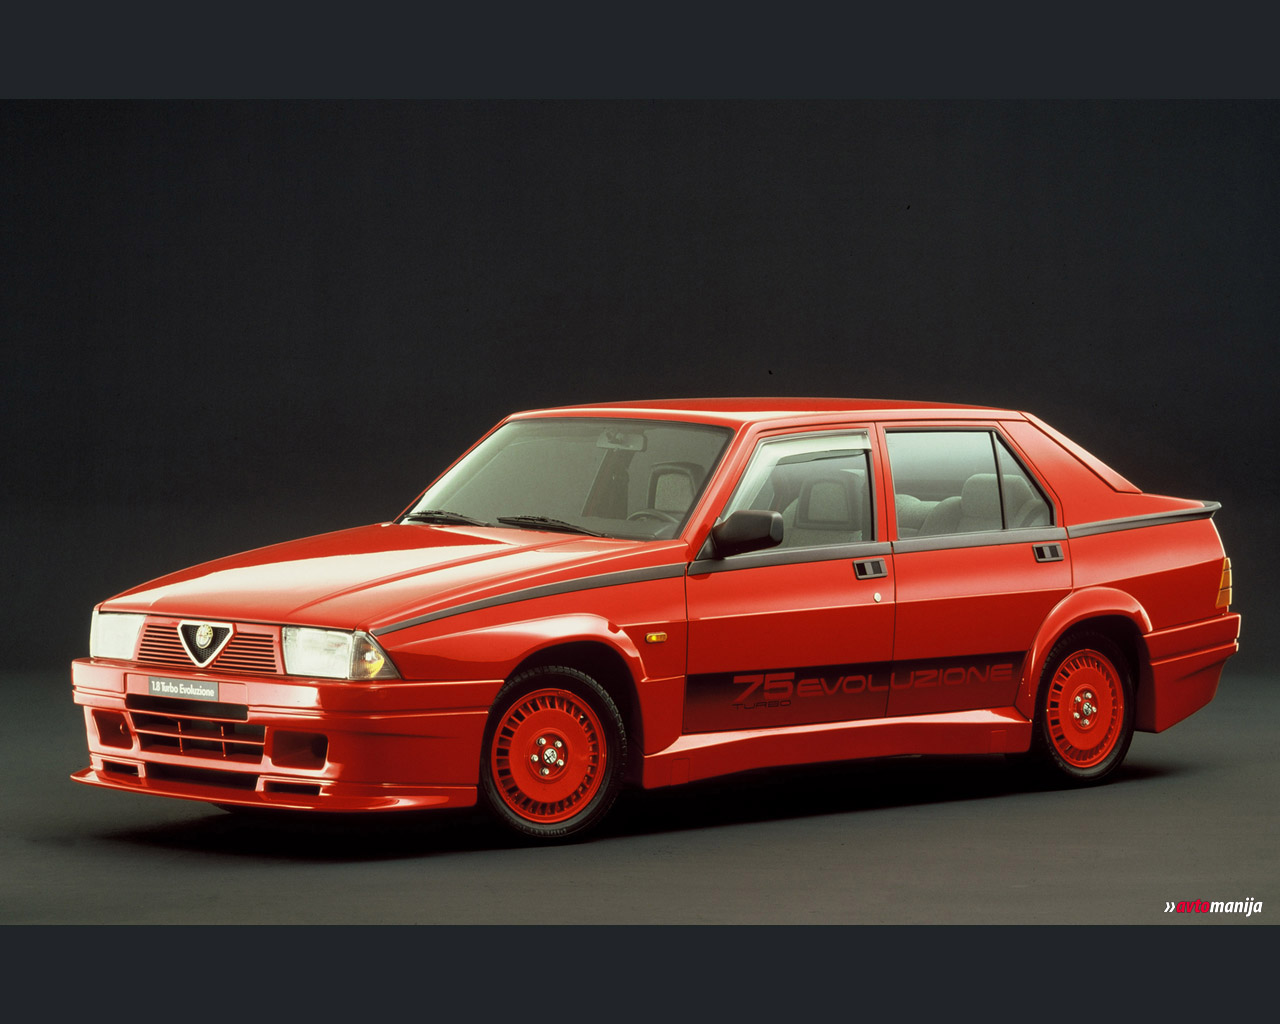 Photos Of Alfa Romeo 75 2 0 Turbo Diesel Photo Tuning Alfa Romeo 75 2 0 Turbo Diesel 02 Jpg Gr8autophoto Com